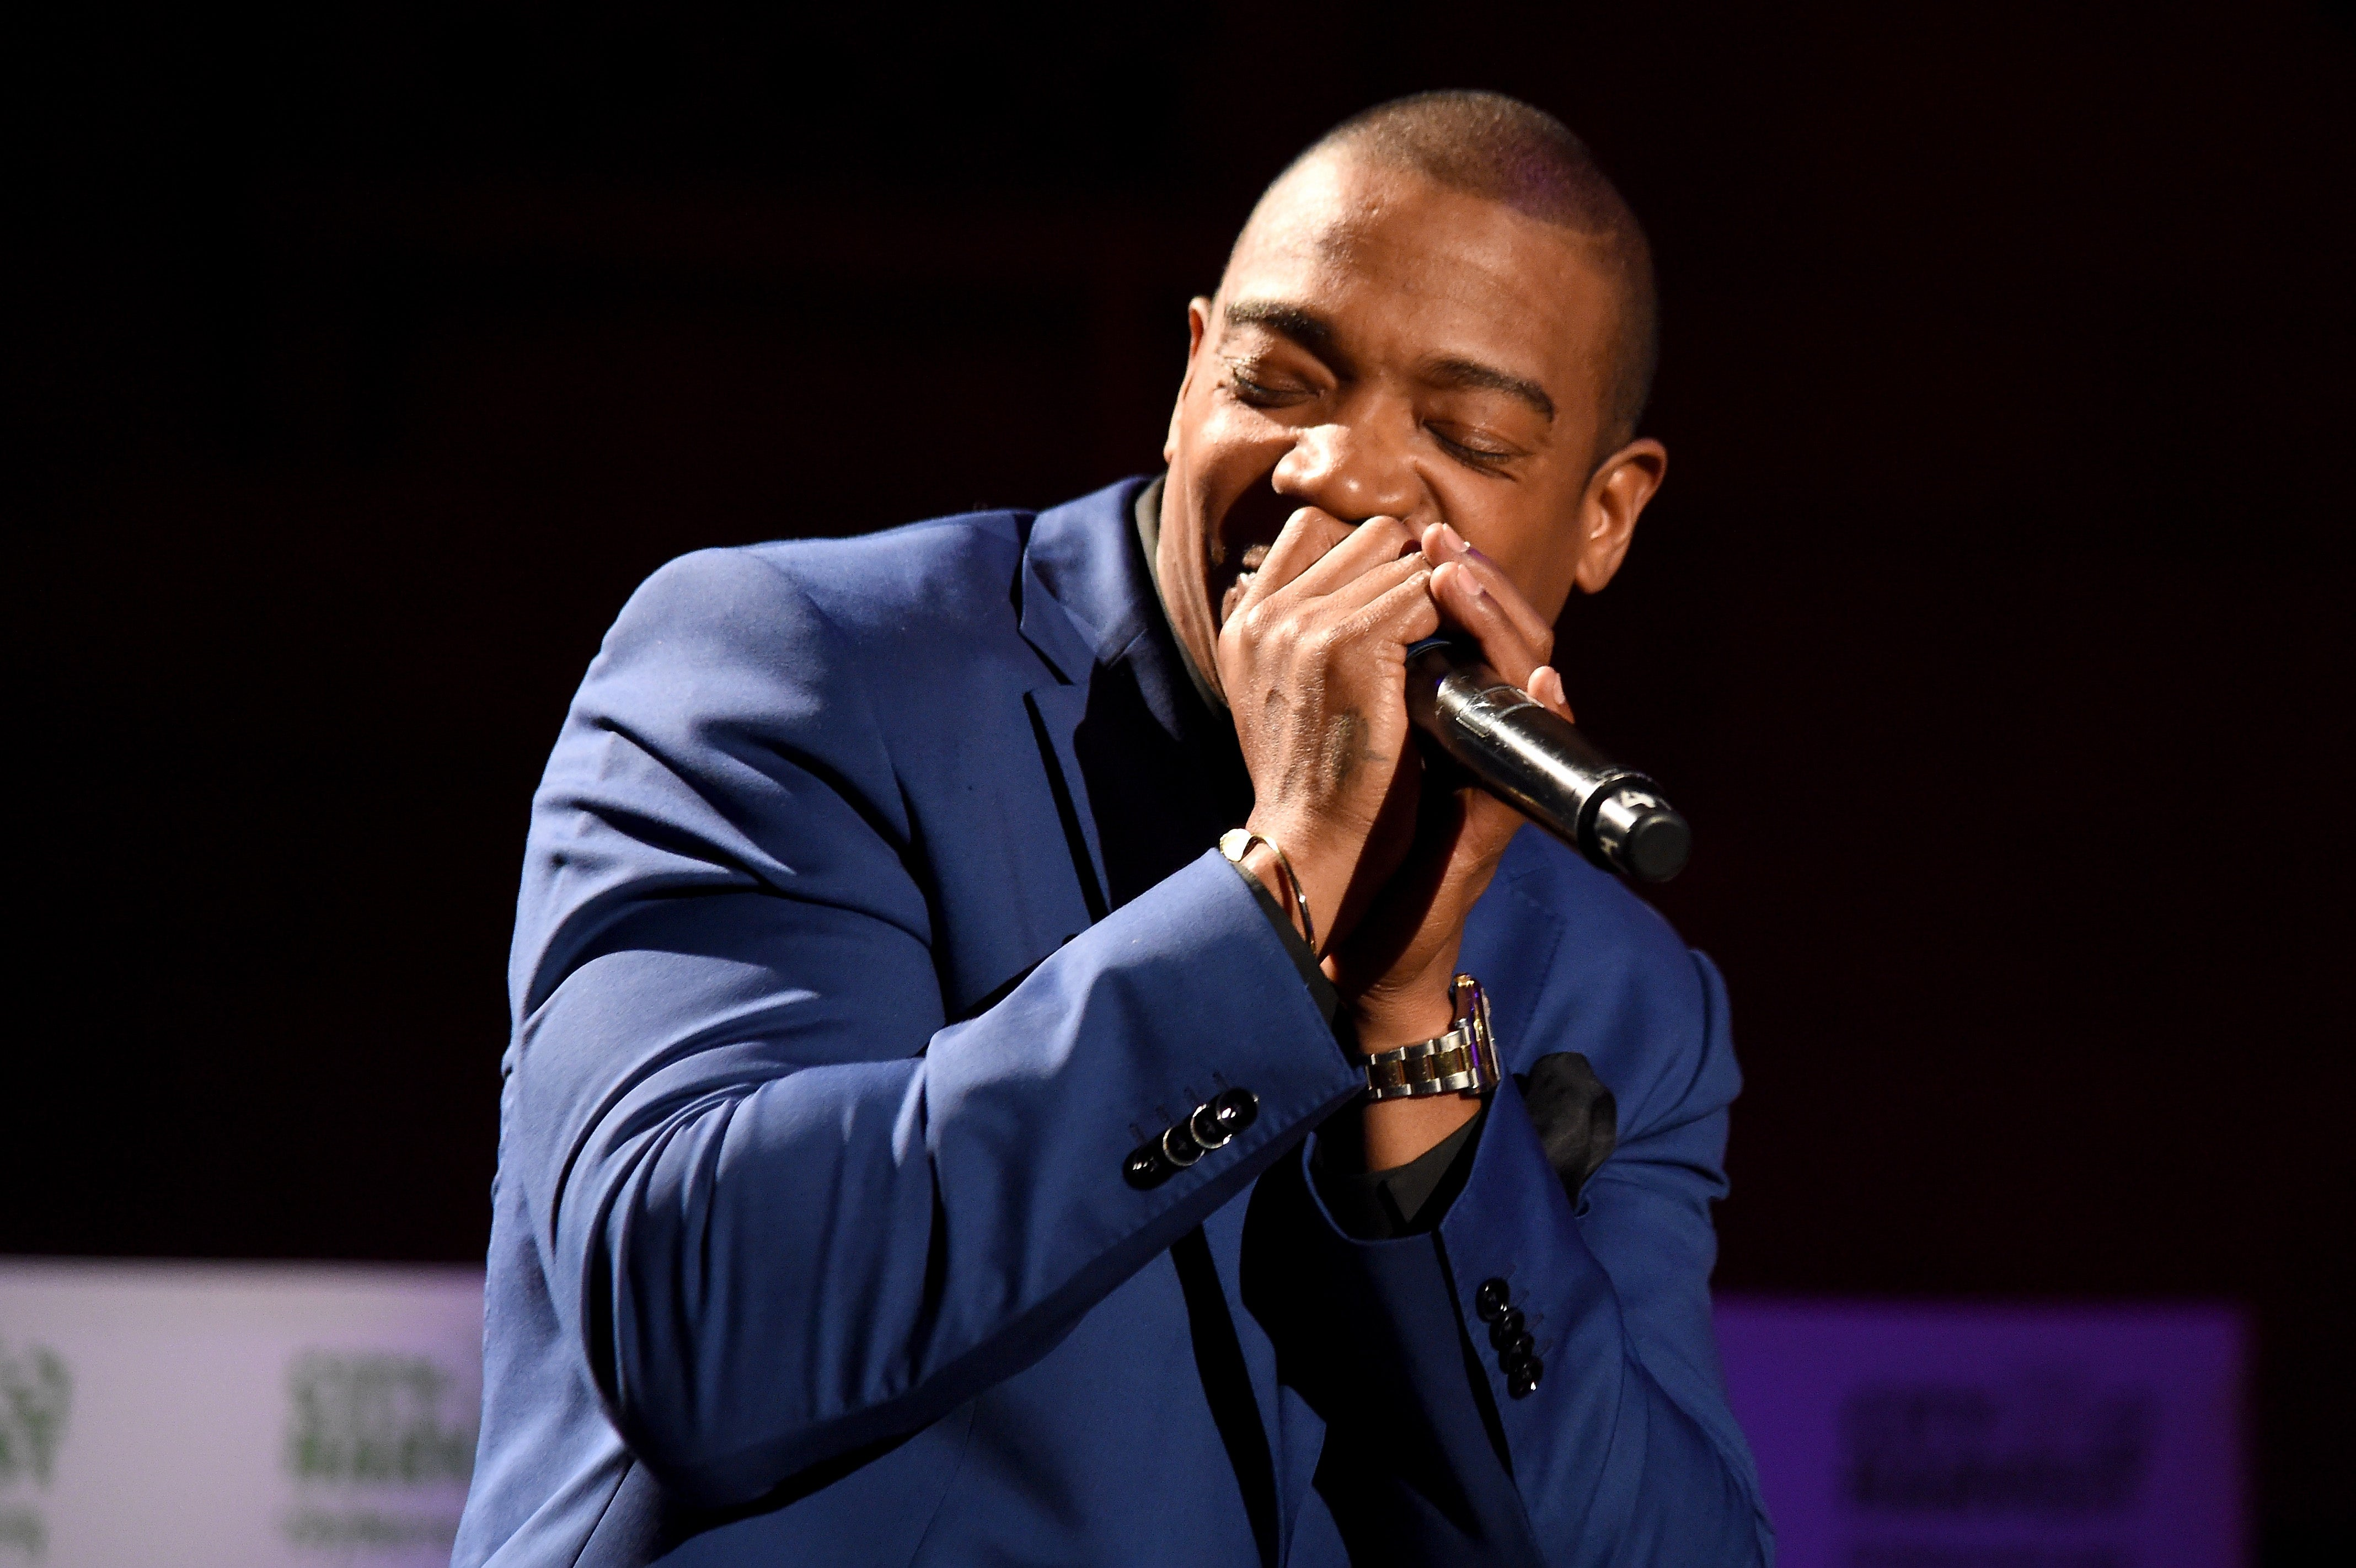 Ja Rule Says Fyre Festival 'Not A Scam' Amid Backlash: 'I Truly Apologize As This Is Not My Fault'